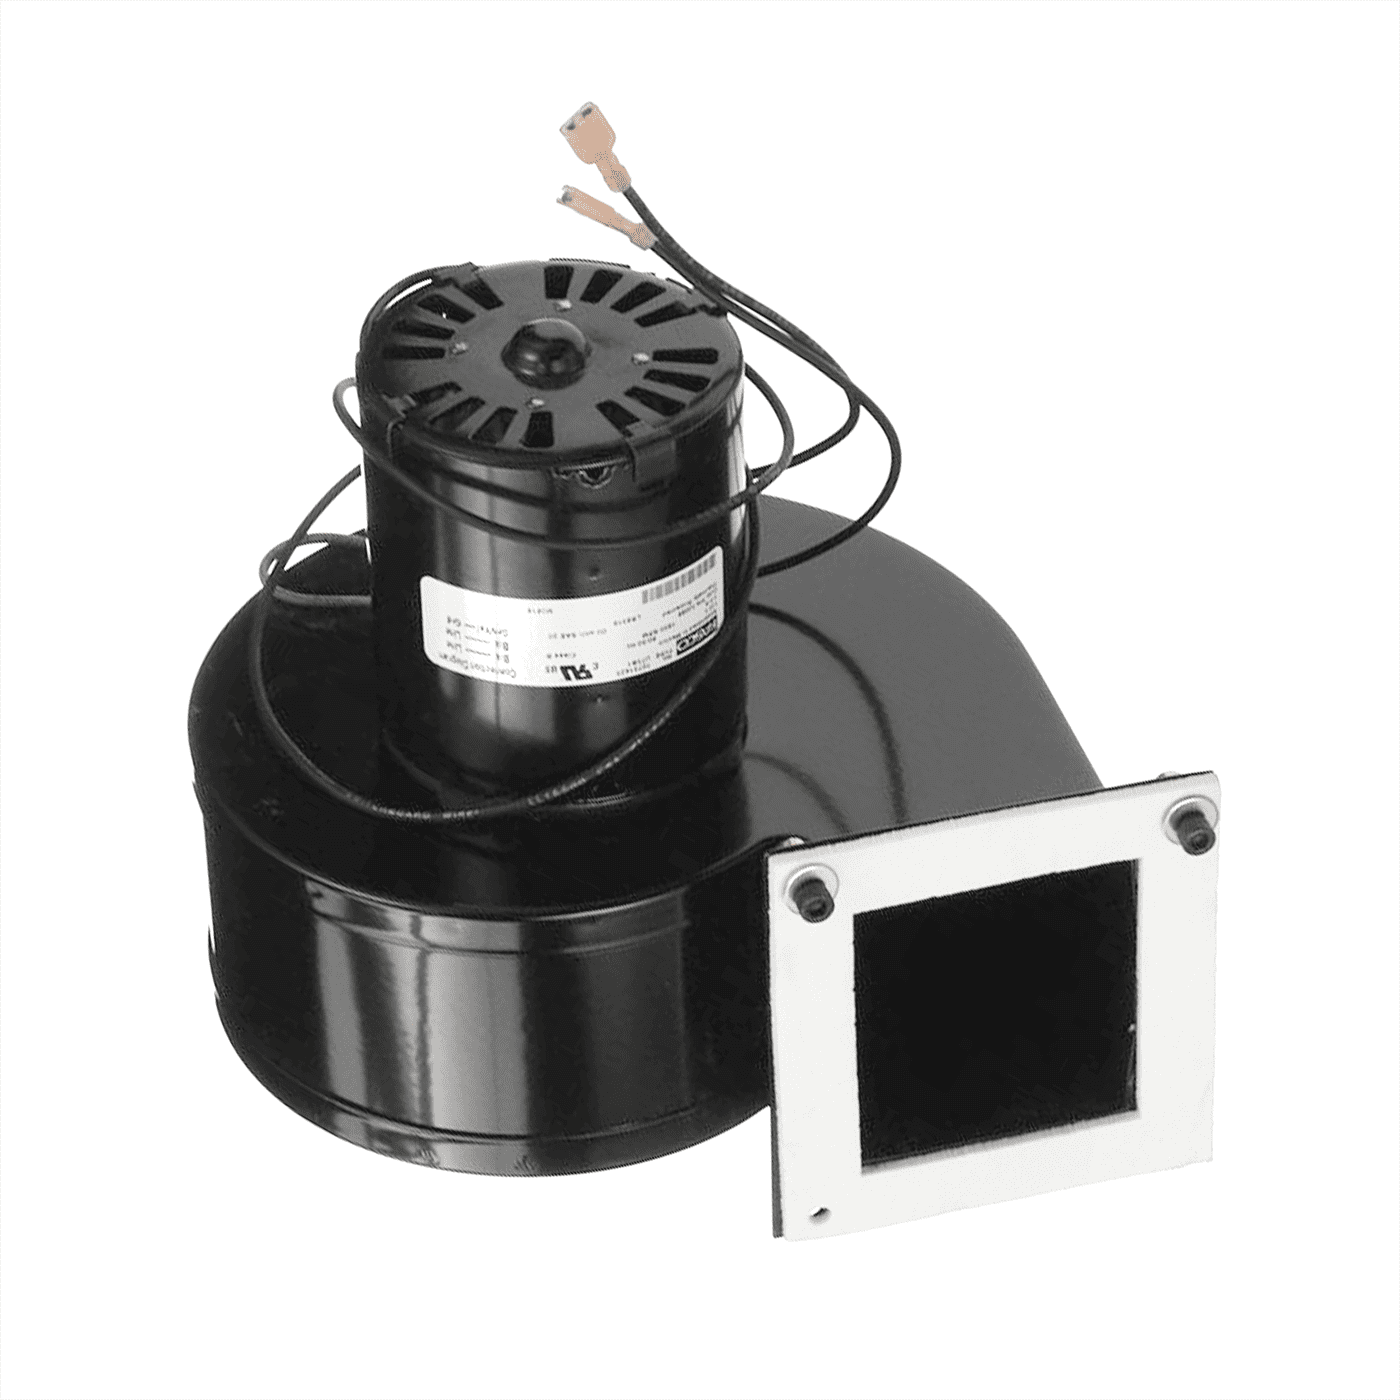 H5888 | Convection Blower Room Air for Country Winslow Insert Pellet Stove Pi40 Part #H5888